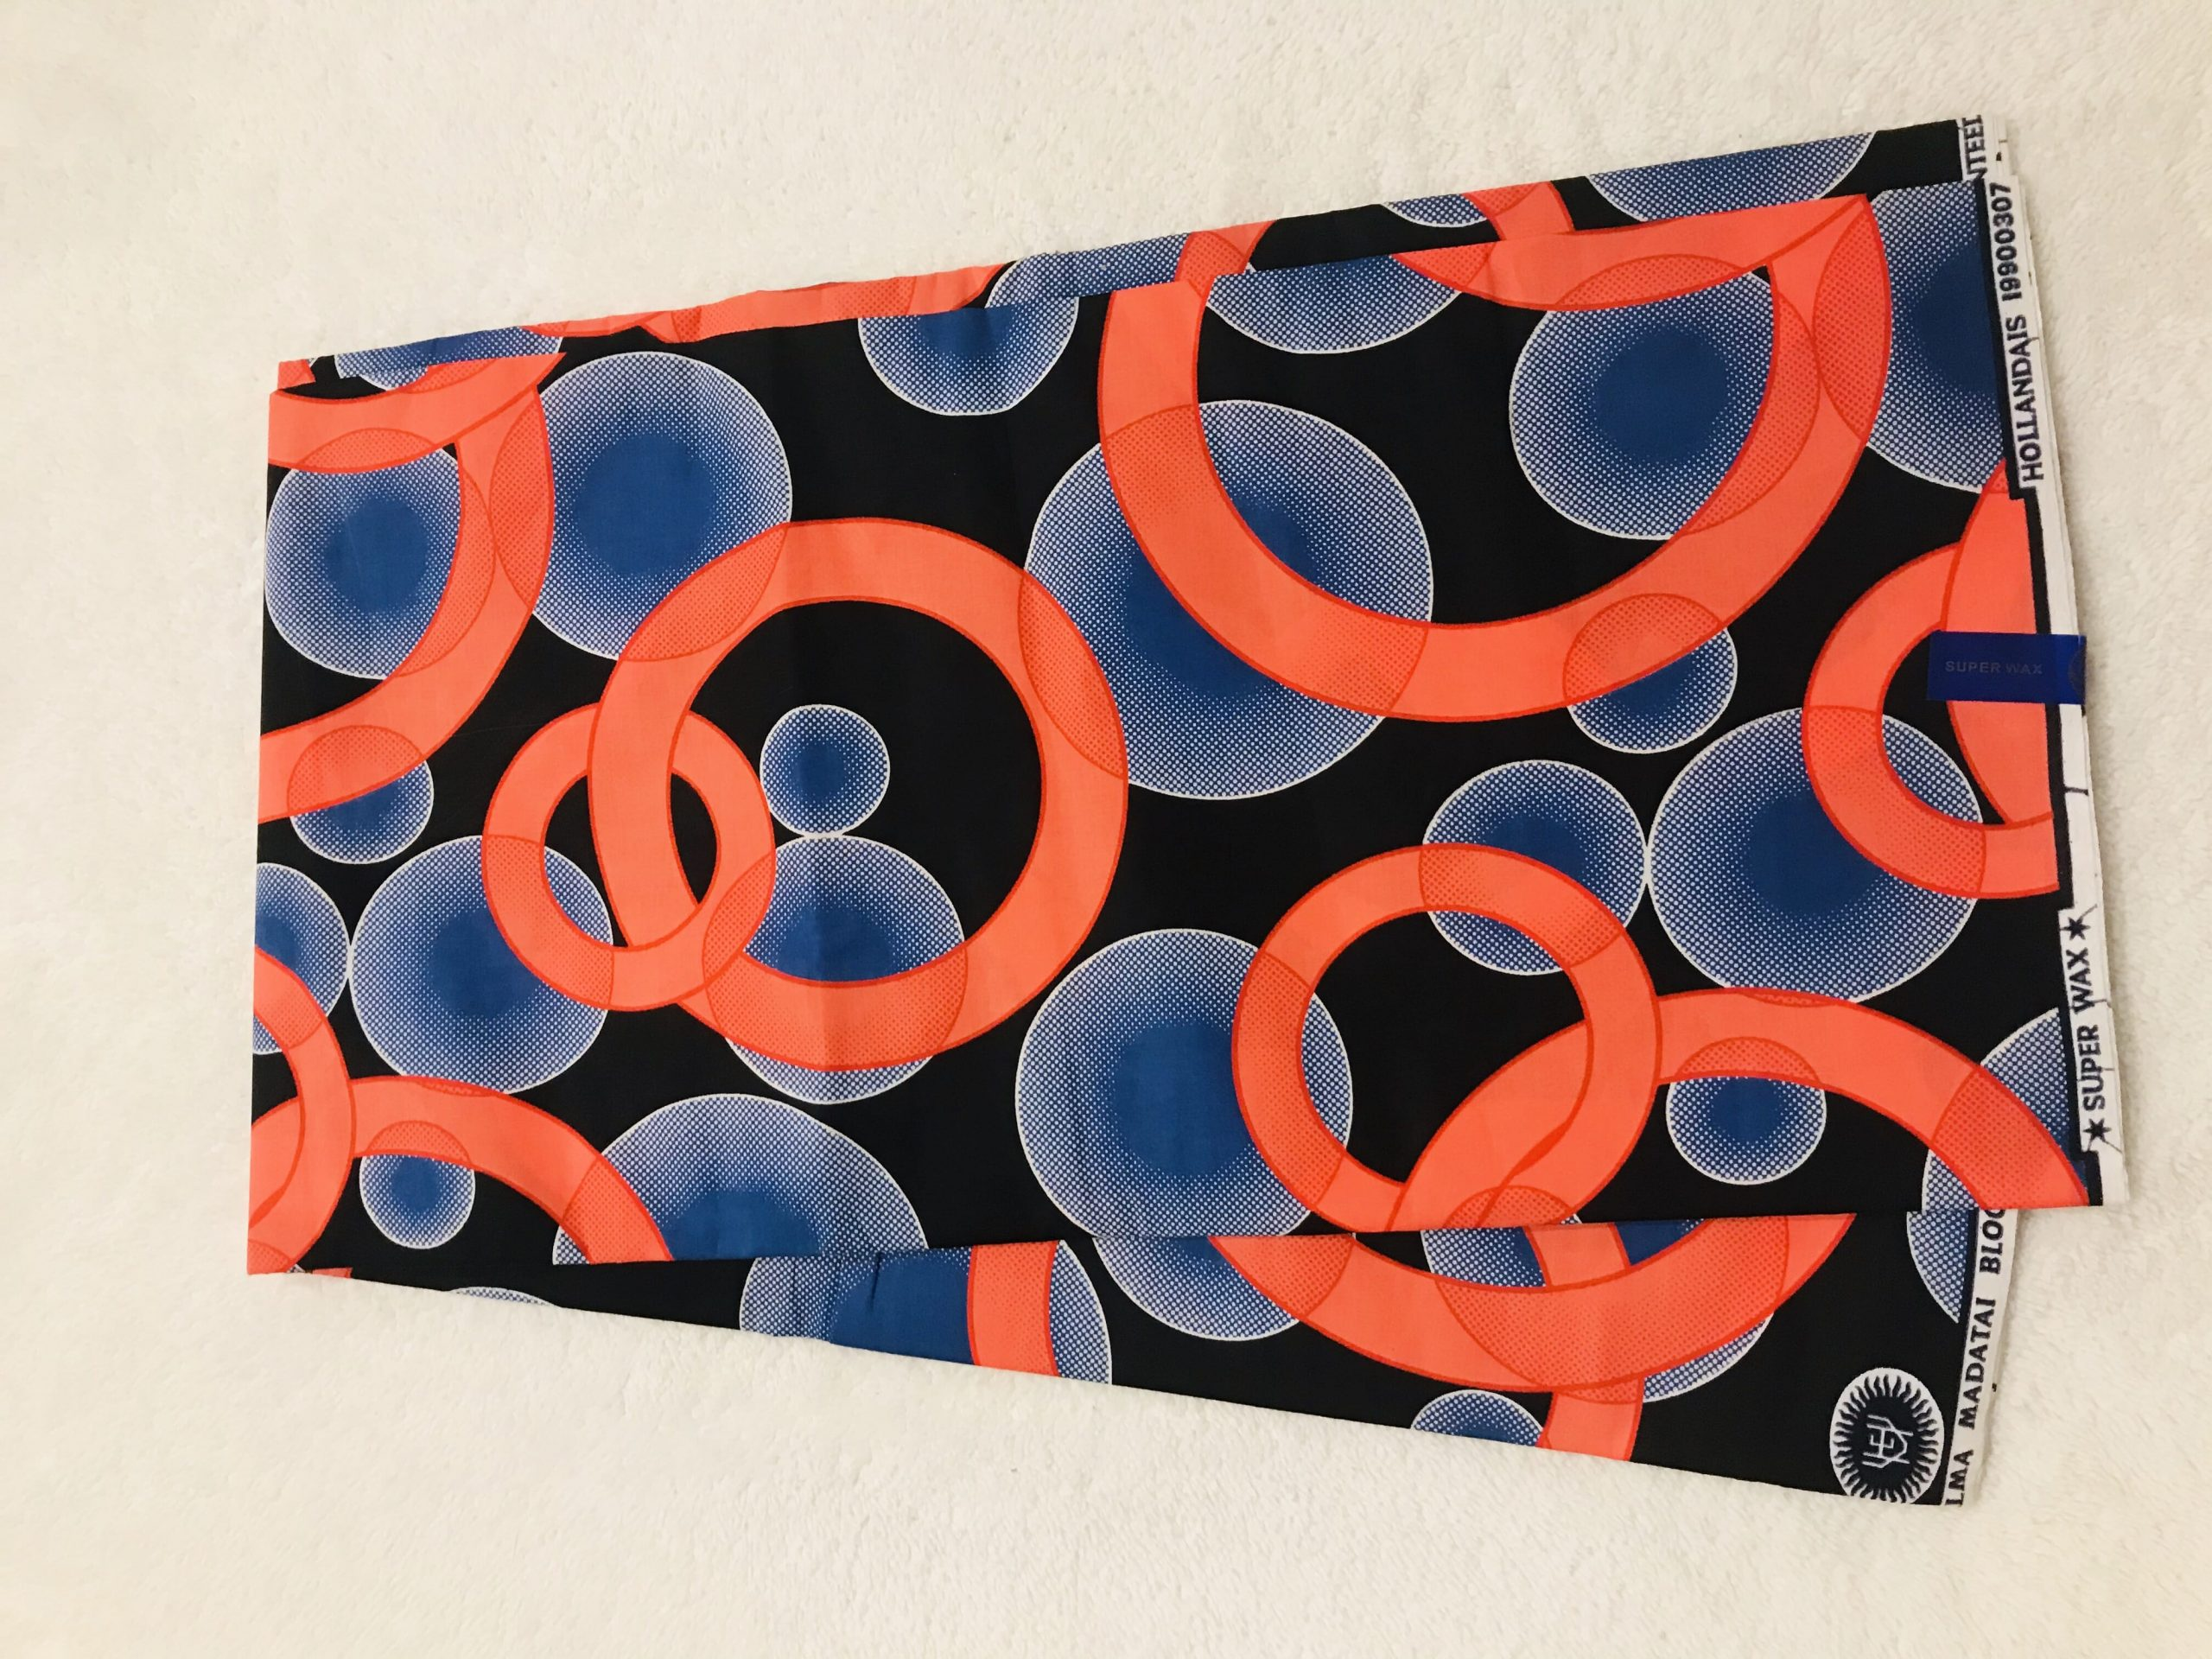 African Wax 6 yards orange blue and black rings and bubles design real African print. Ankanra 100% cotton material.